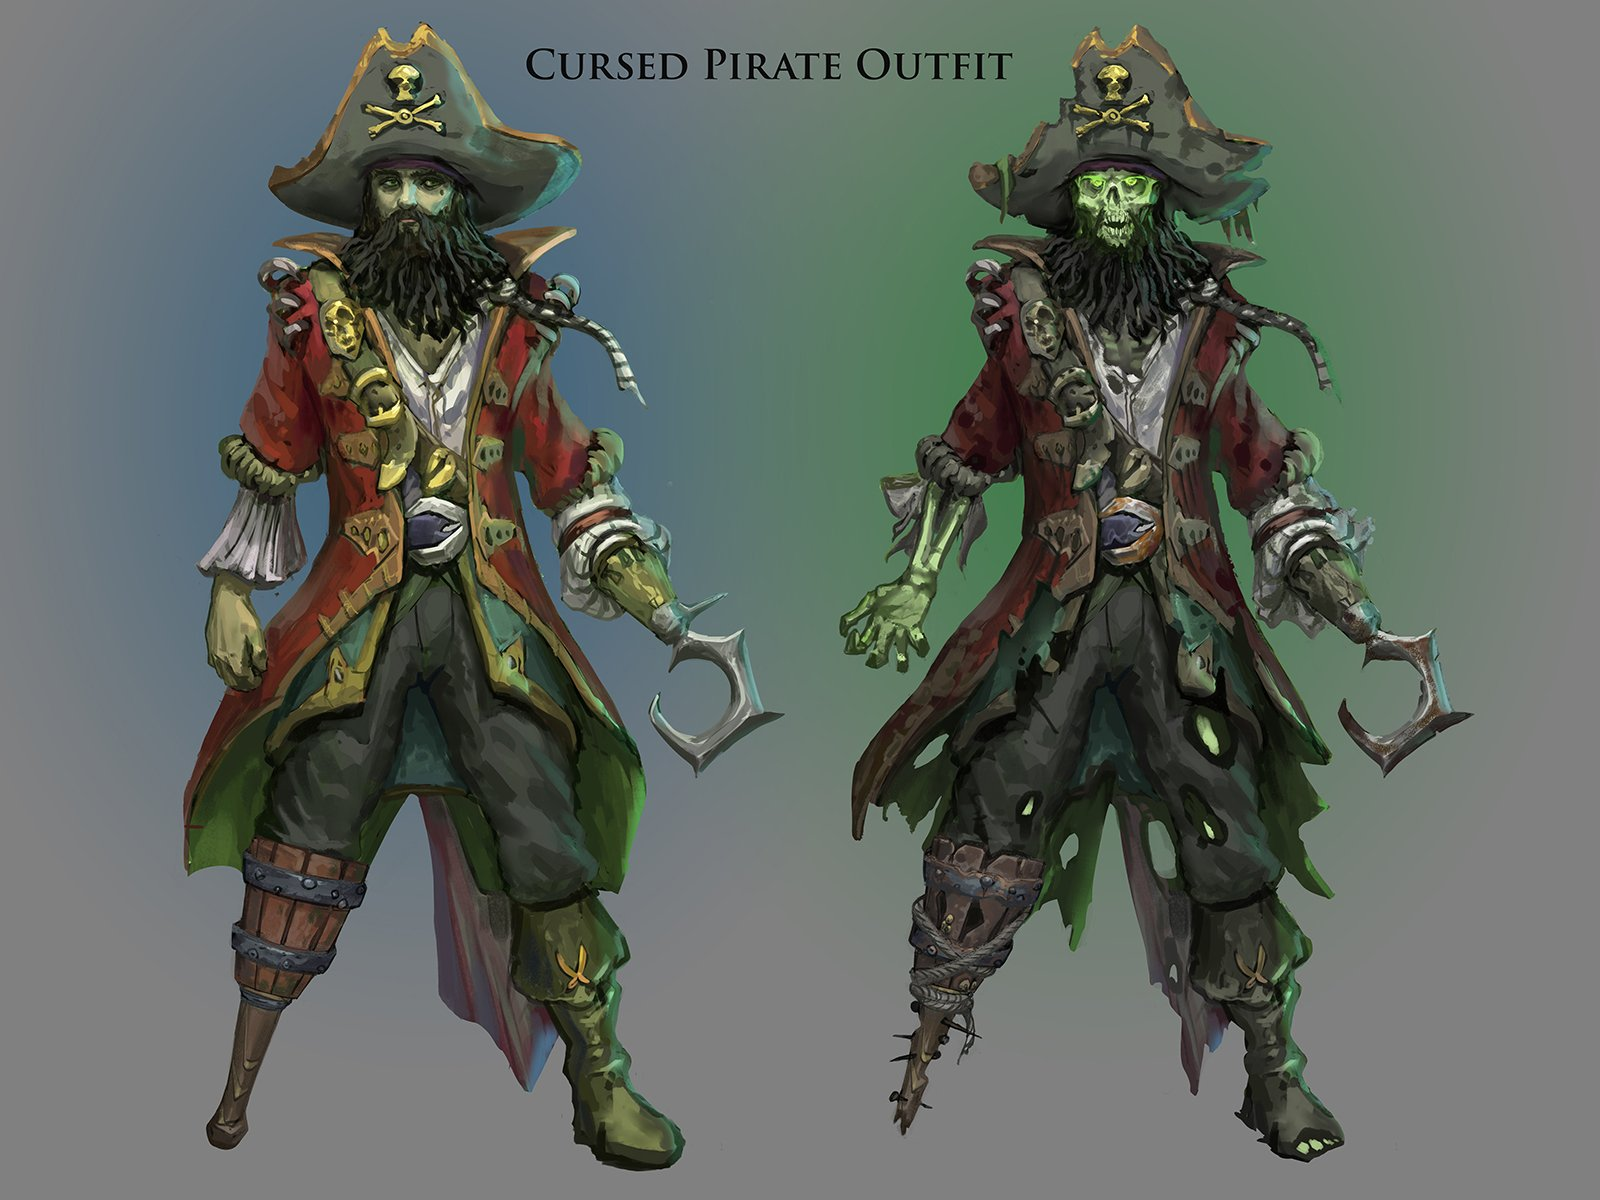 Drowings Imags: Captain Deathbeard's Outfit